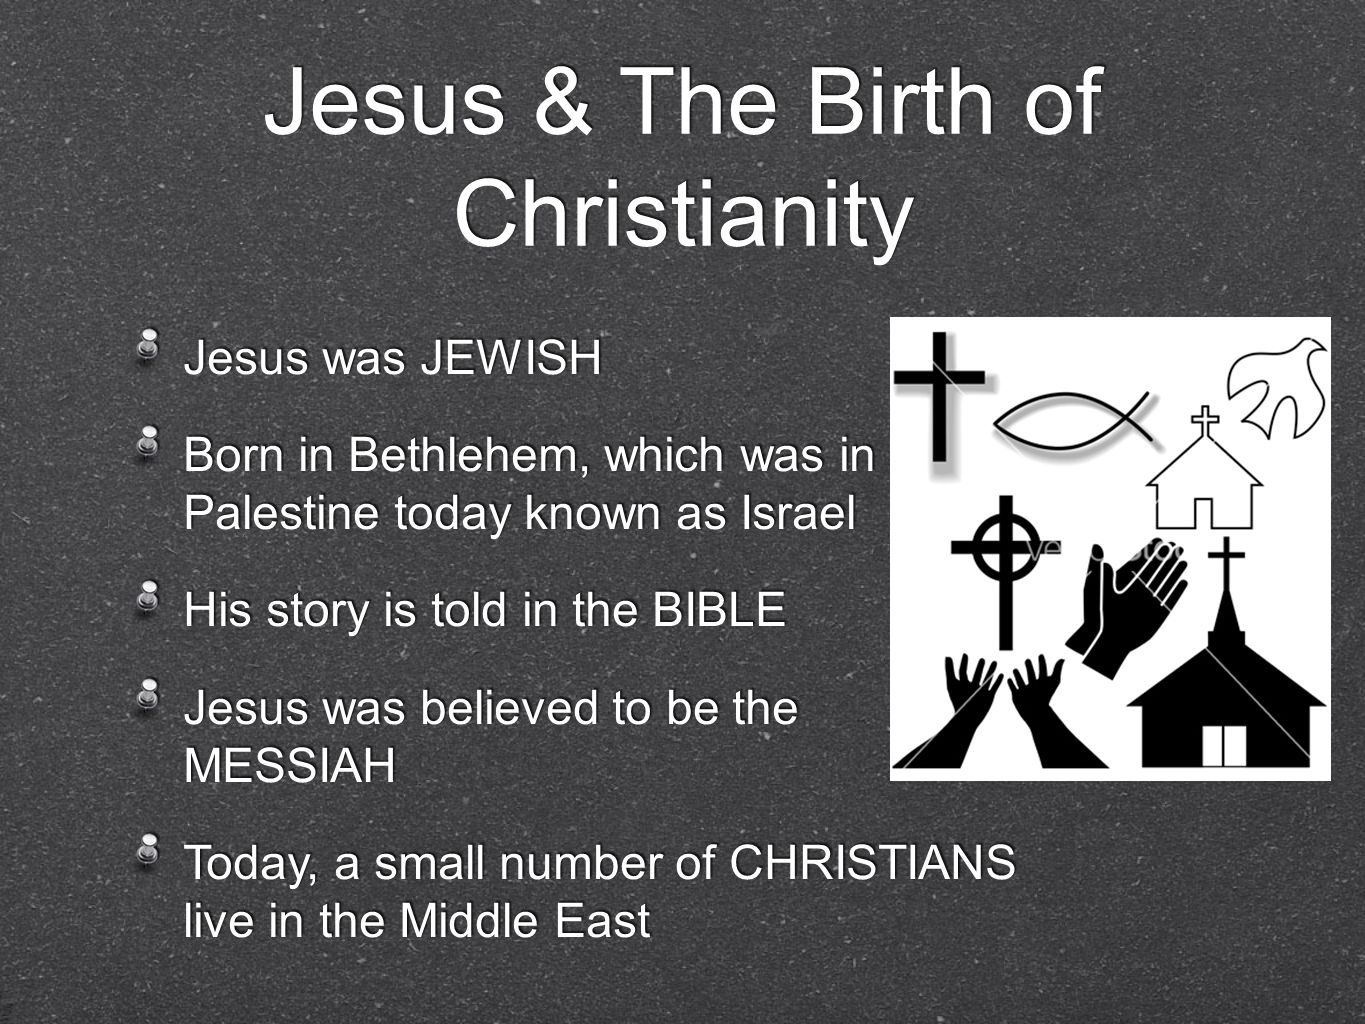 Jesus & The Birth of Christianity